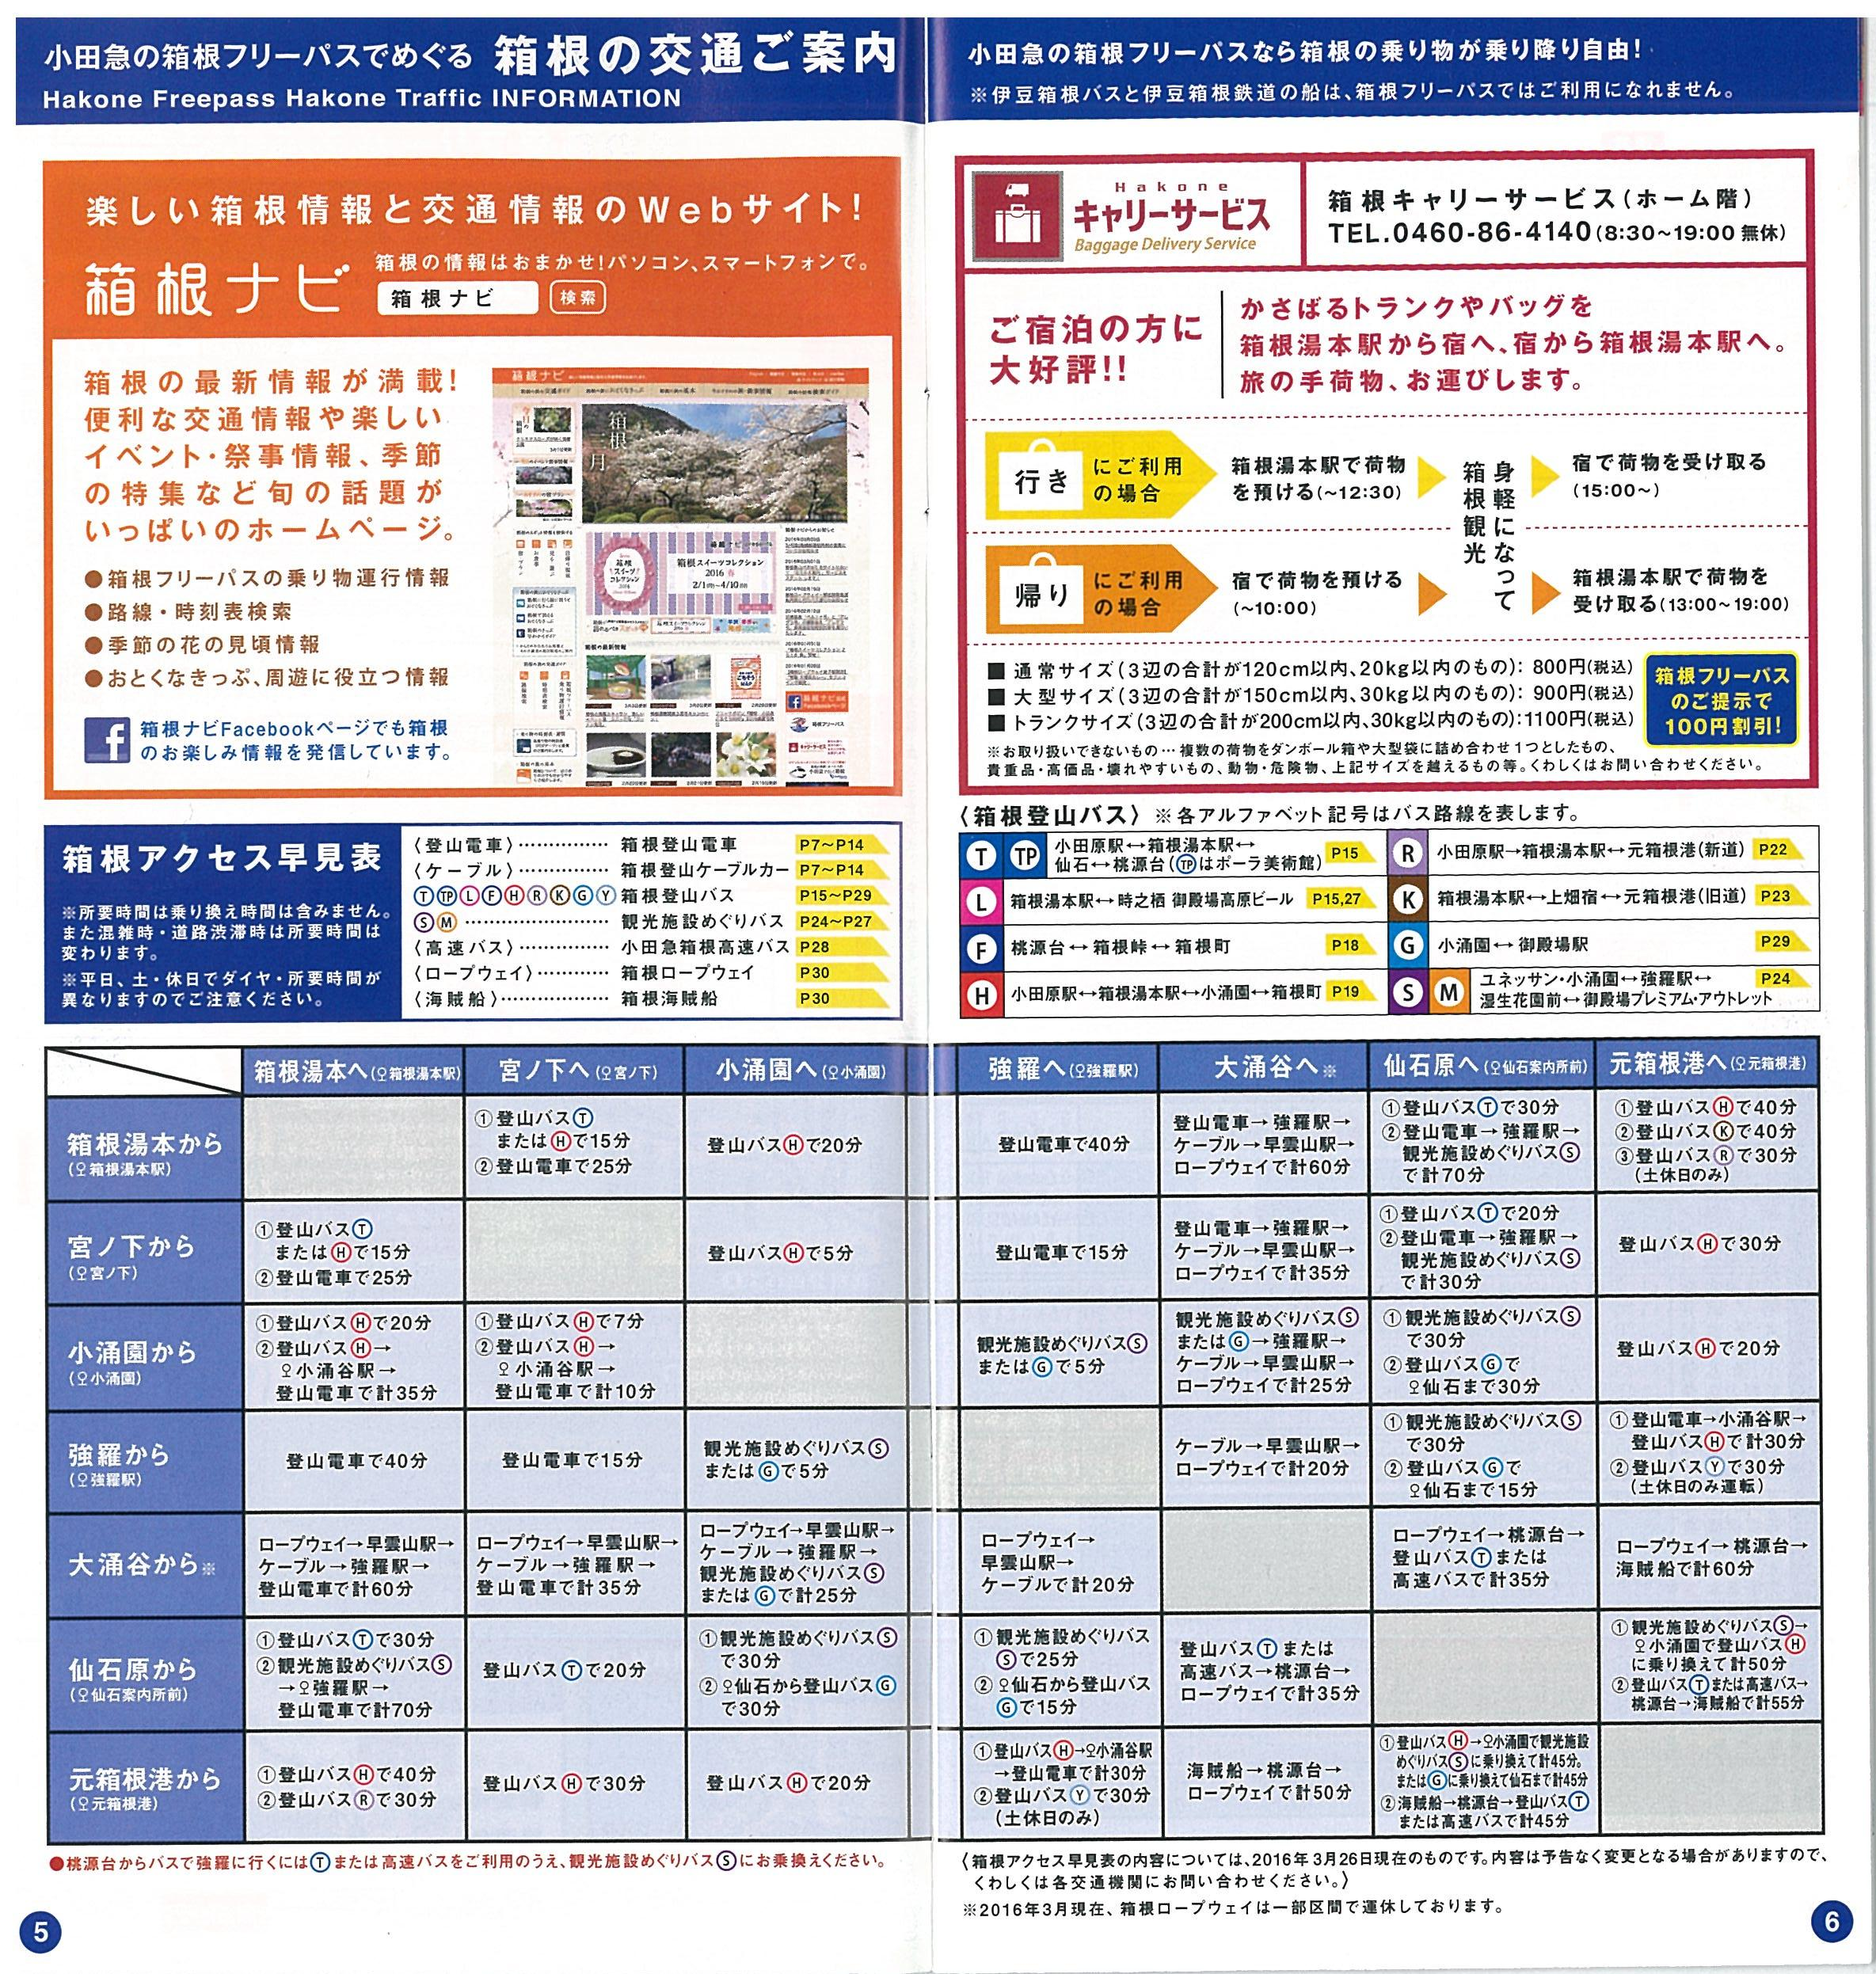 [Continuation] Day Trip from Tokyo : Hakone 箱根. Maps and timetables. Page 5 and 6. Bus timetables.バス時刻表